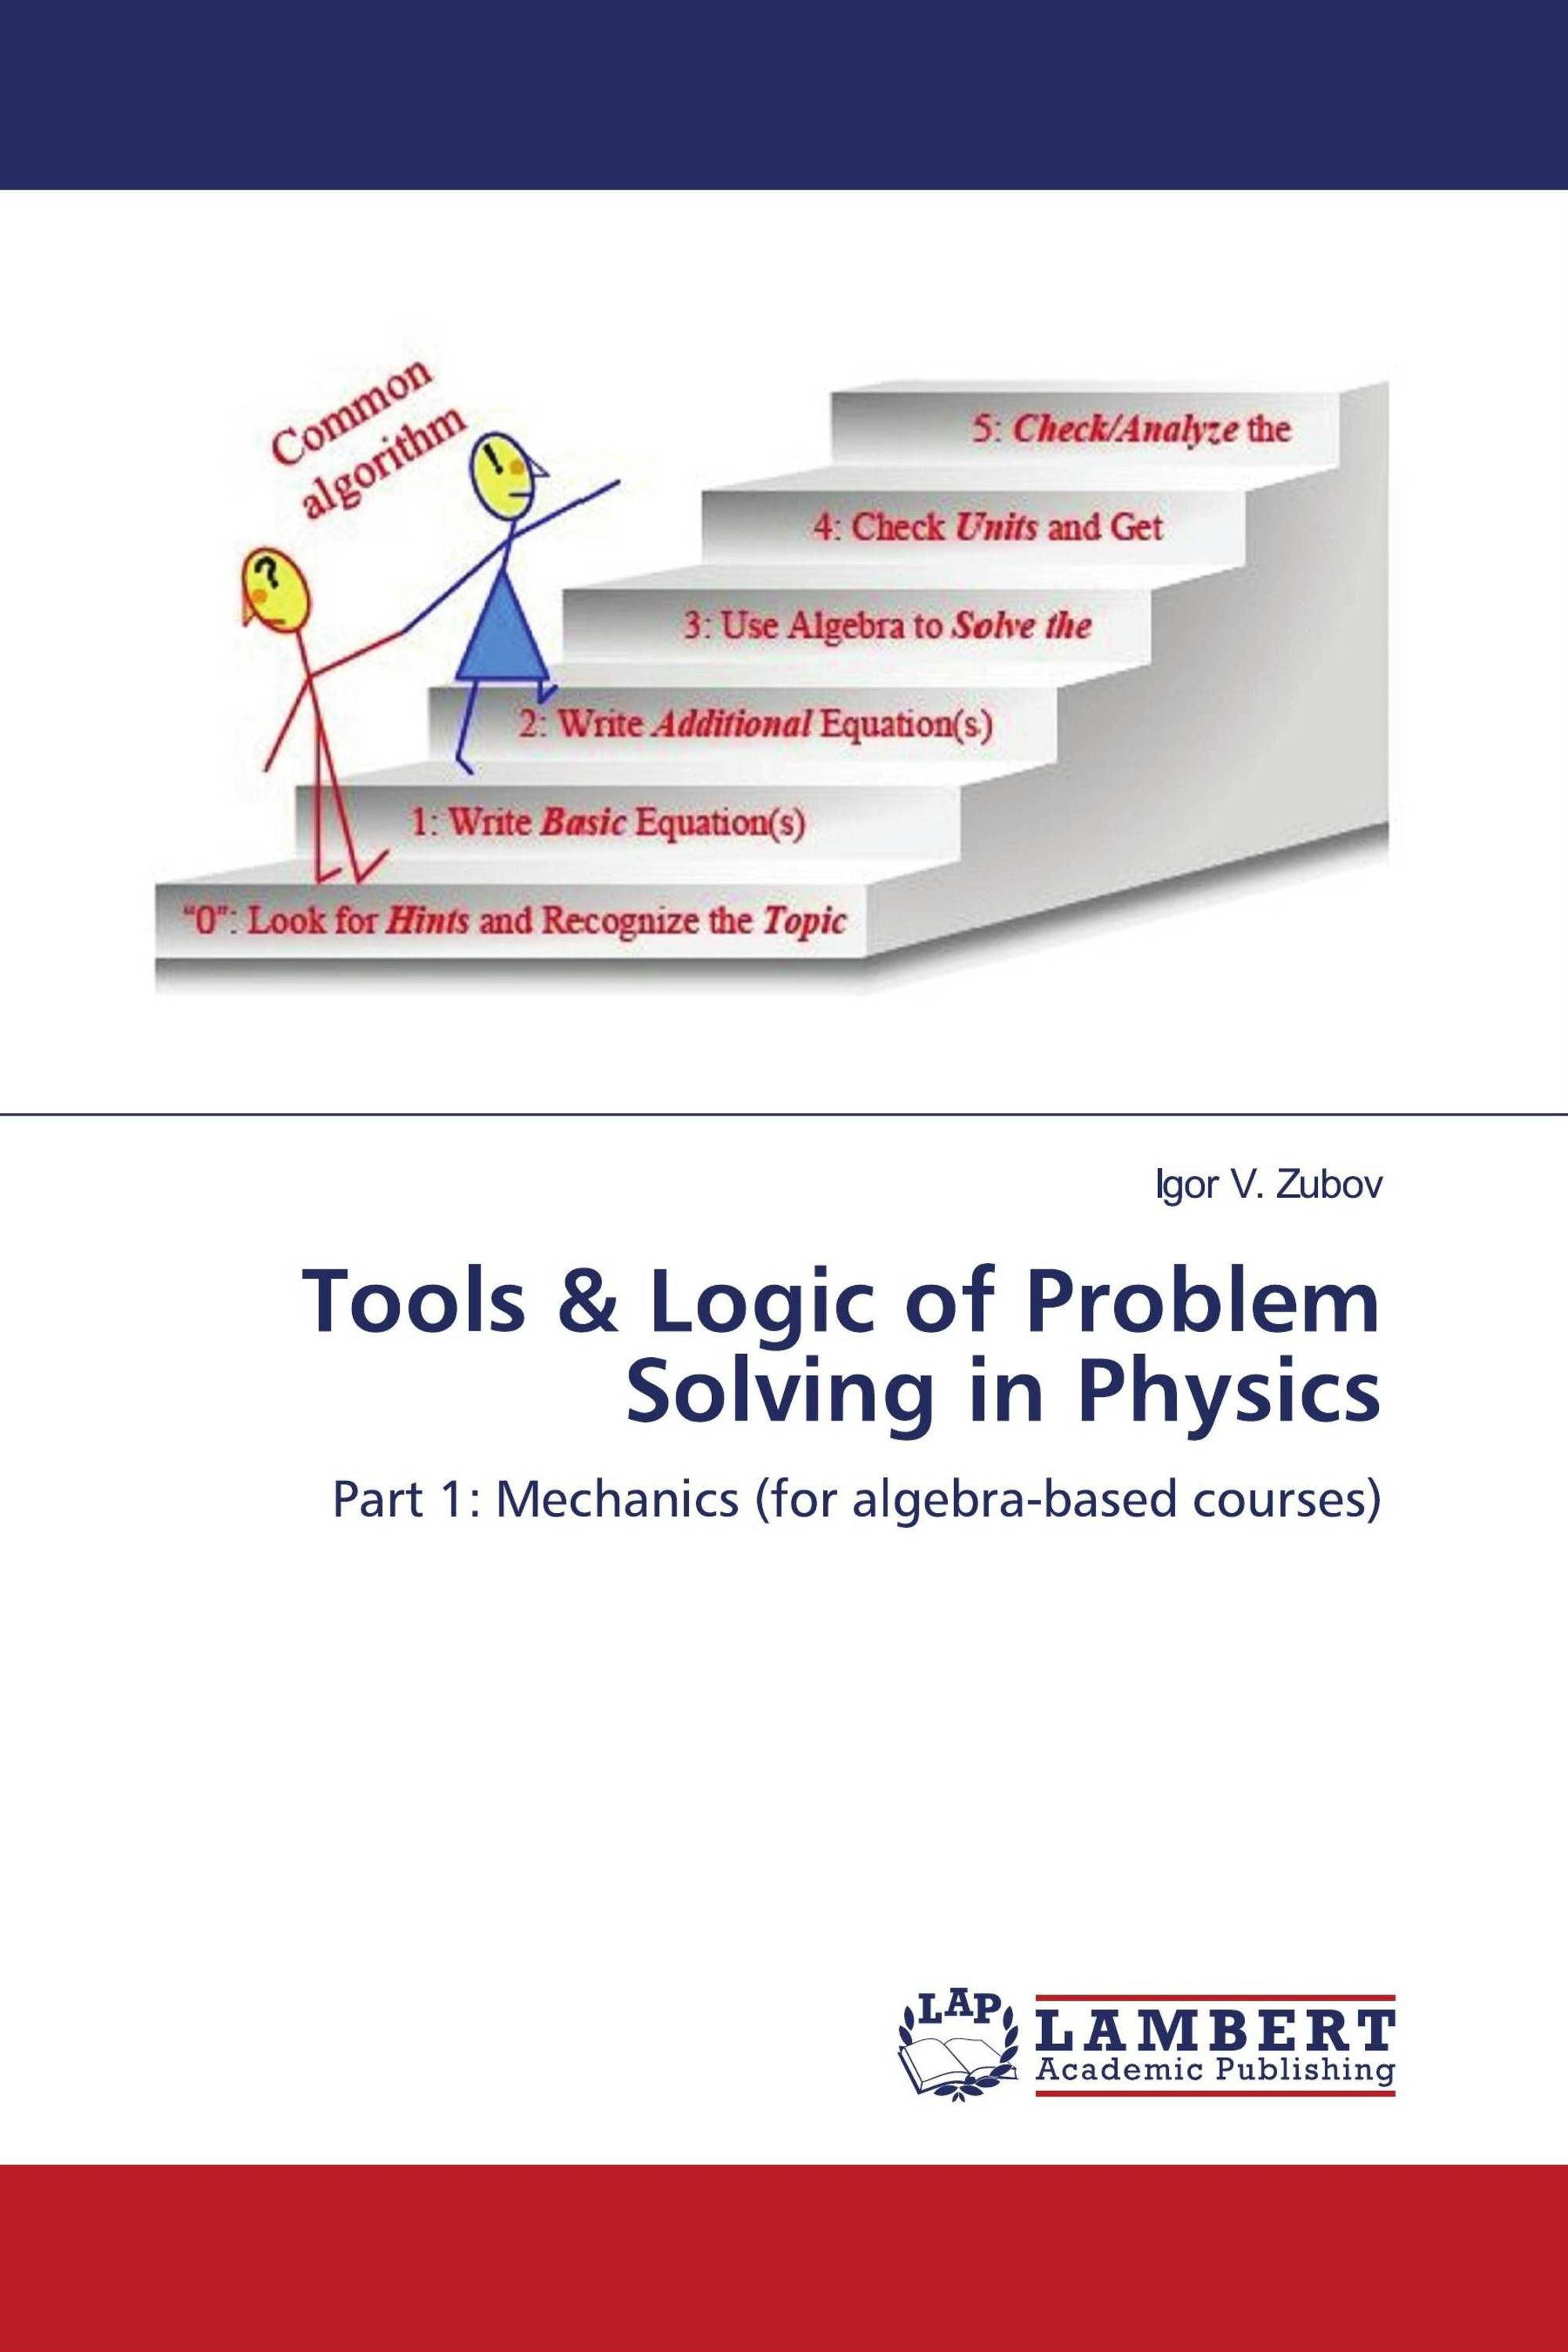 Tools & Logic of Problem Solving in Physics